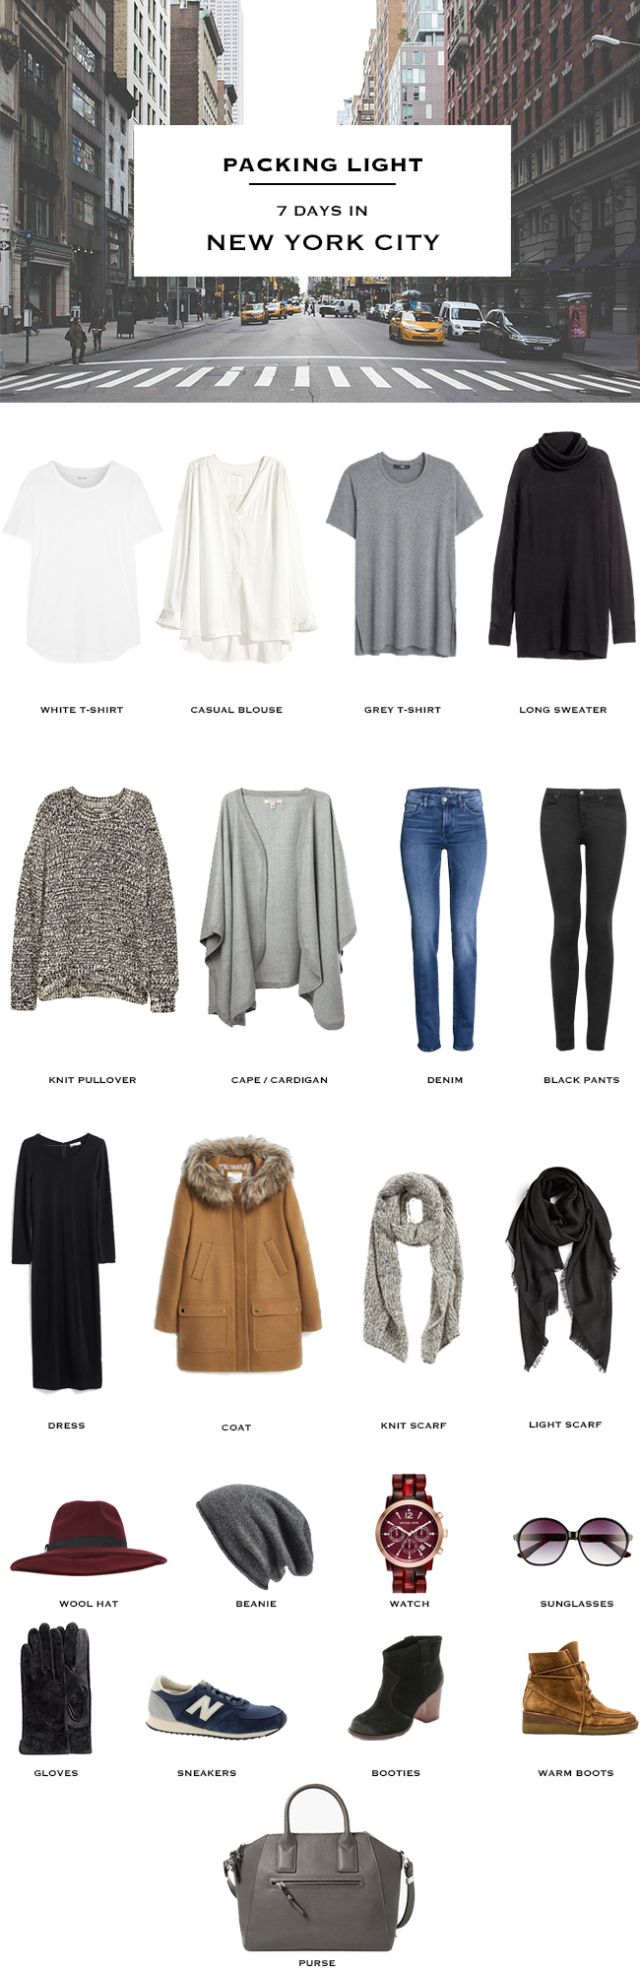 7 Days in NYC Packing List